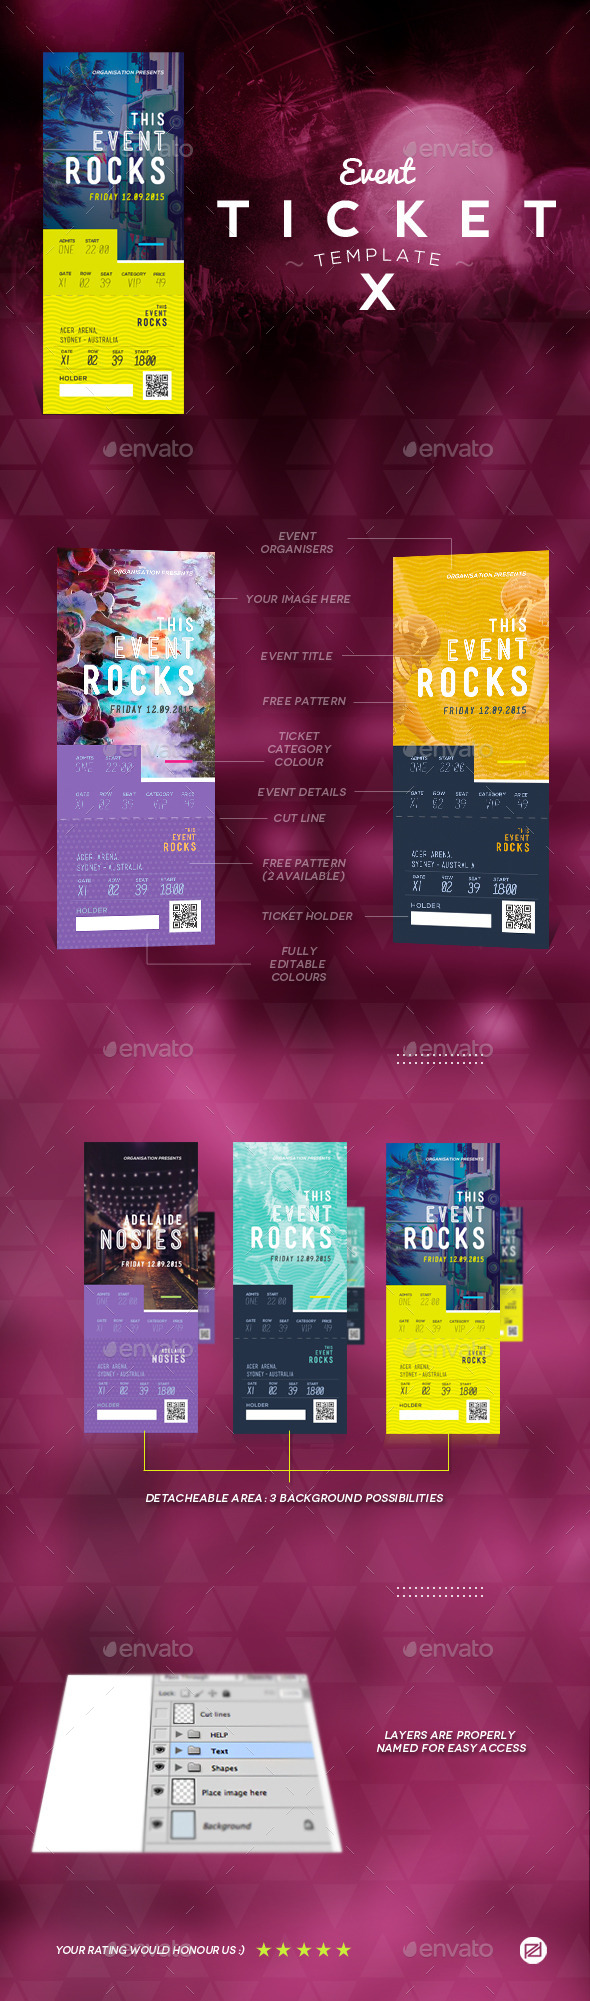 Event Tickets Template 10 - Miscellaneous Print Templates